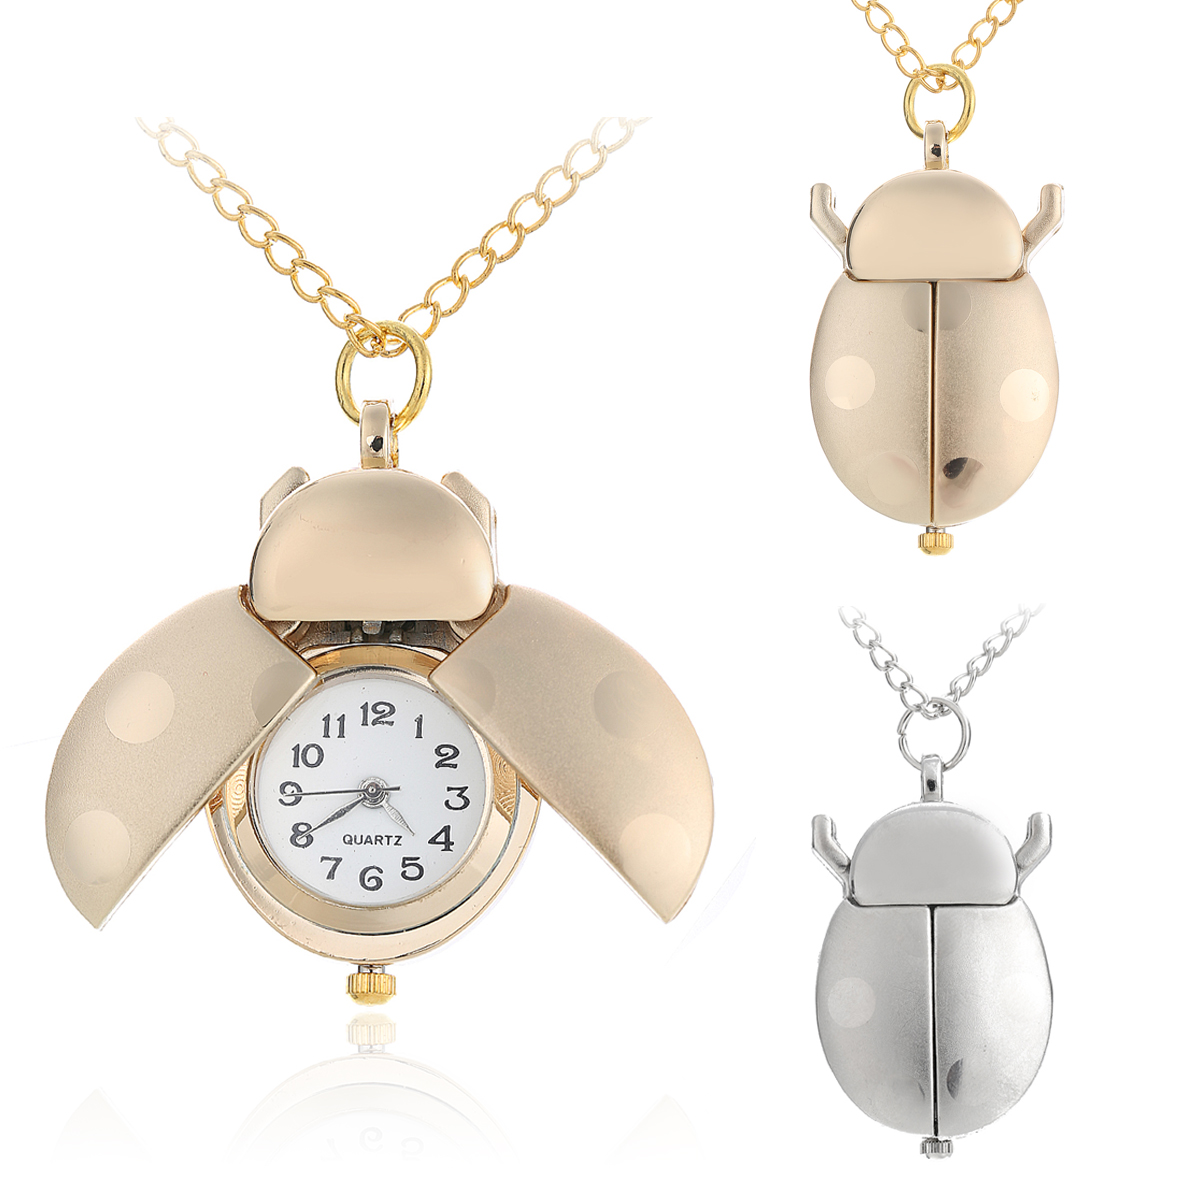 все цены на Gold/Silver Beetle Pocket Watch Womens Girl Small Animal Necklace Pendant Quartz Shellhard Ladybug Fob Pocket Watch with Chain